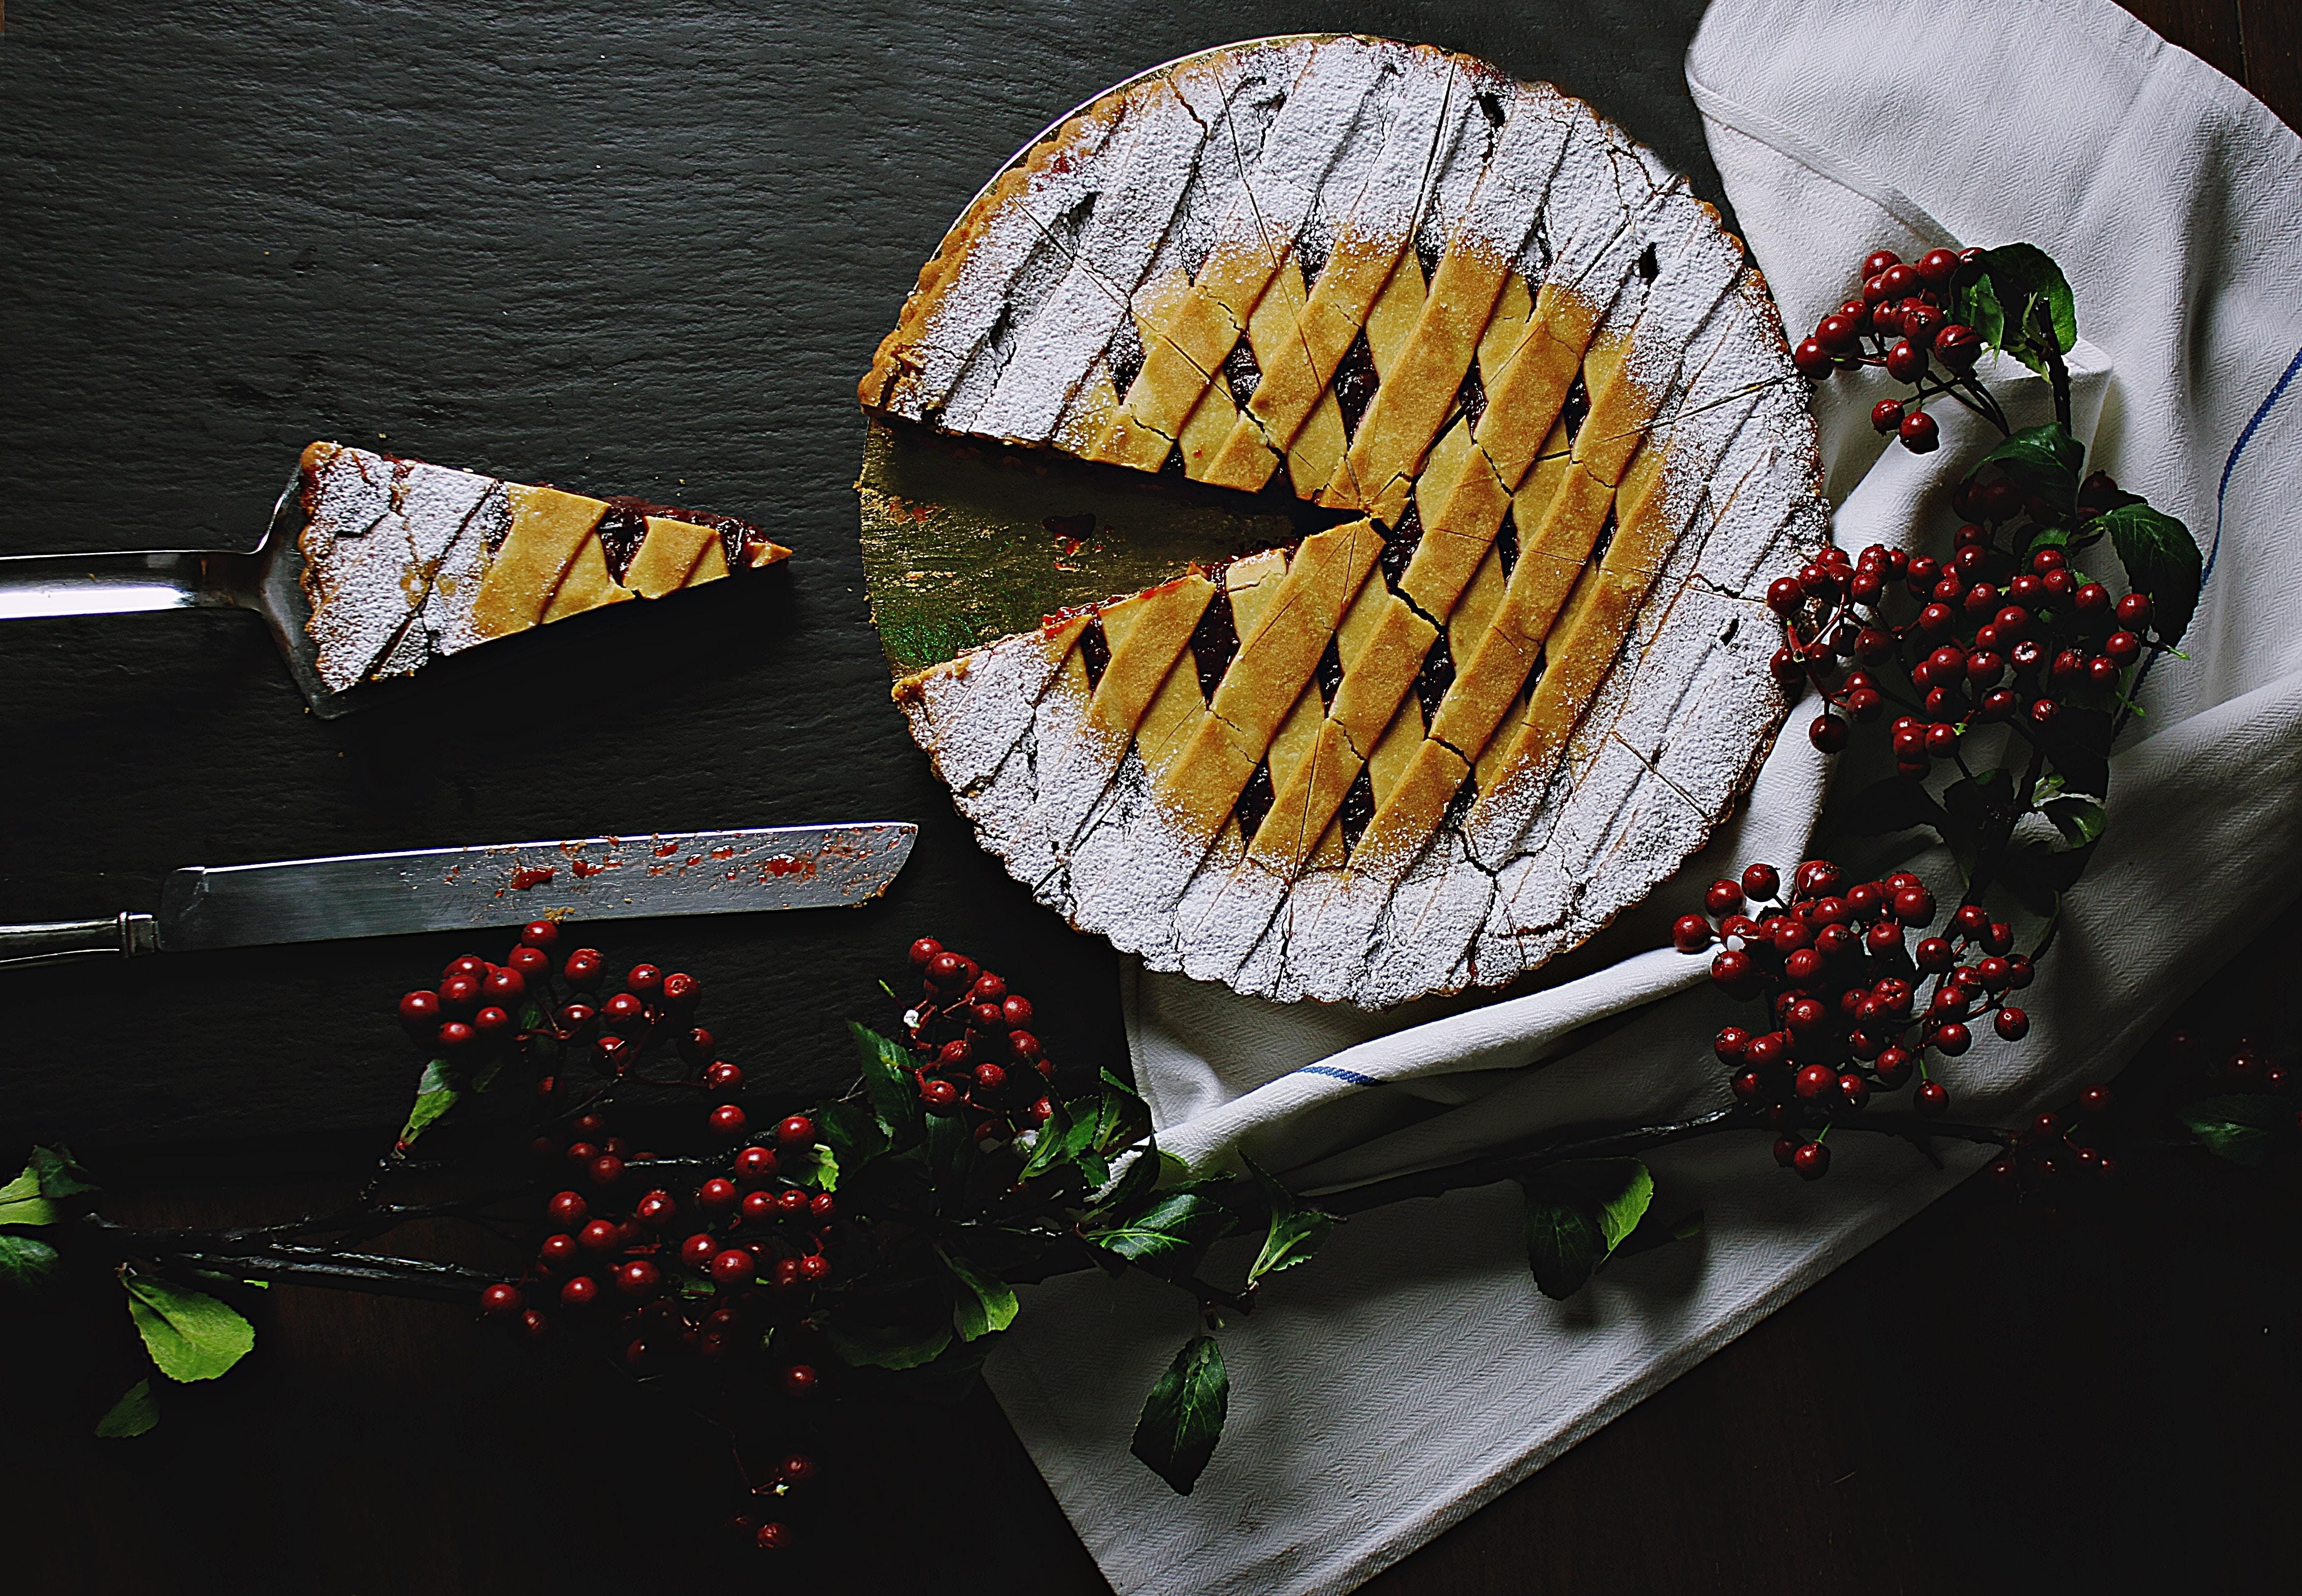 Healthful Holiday Pies Benefit Workshop to Support the World Wildlife Fund